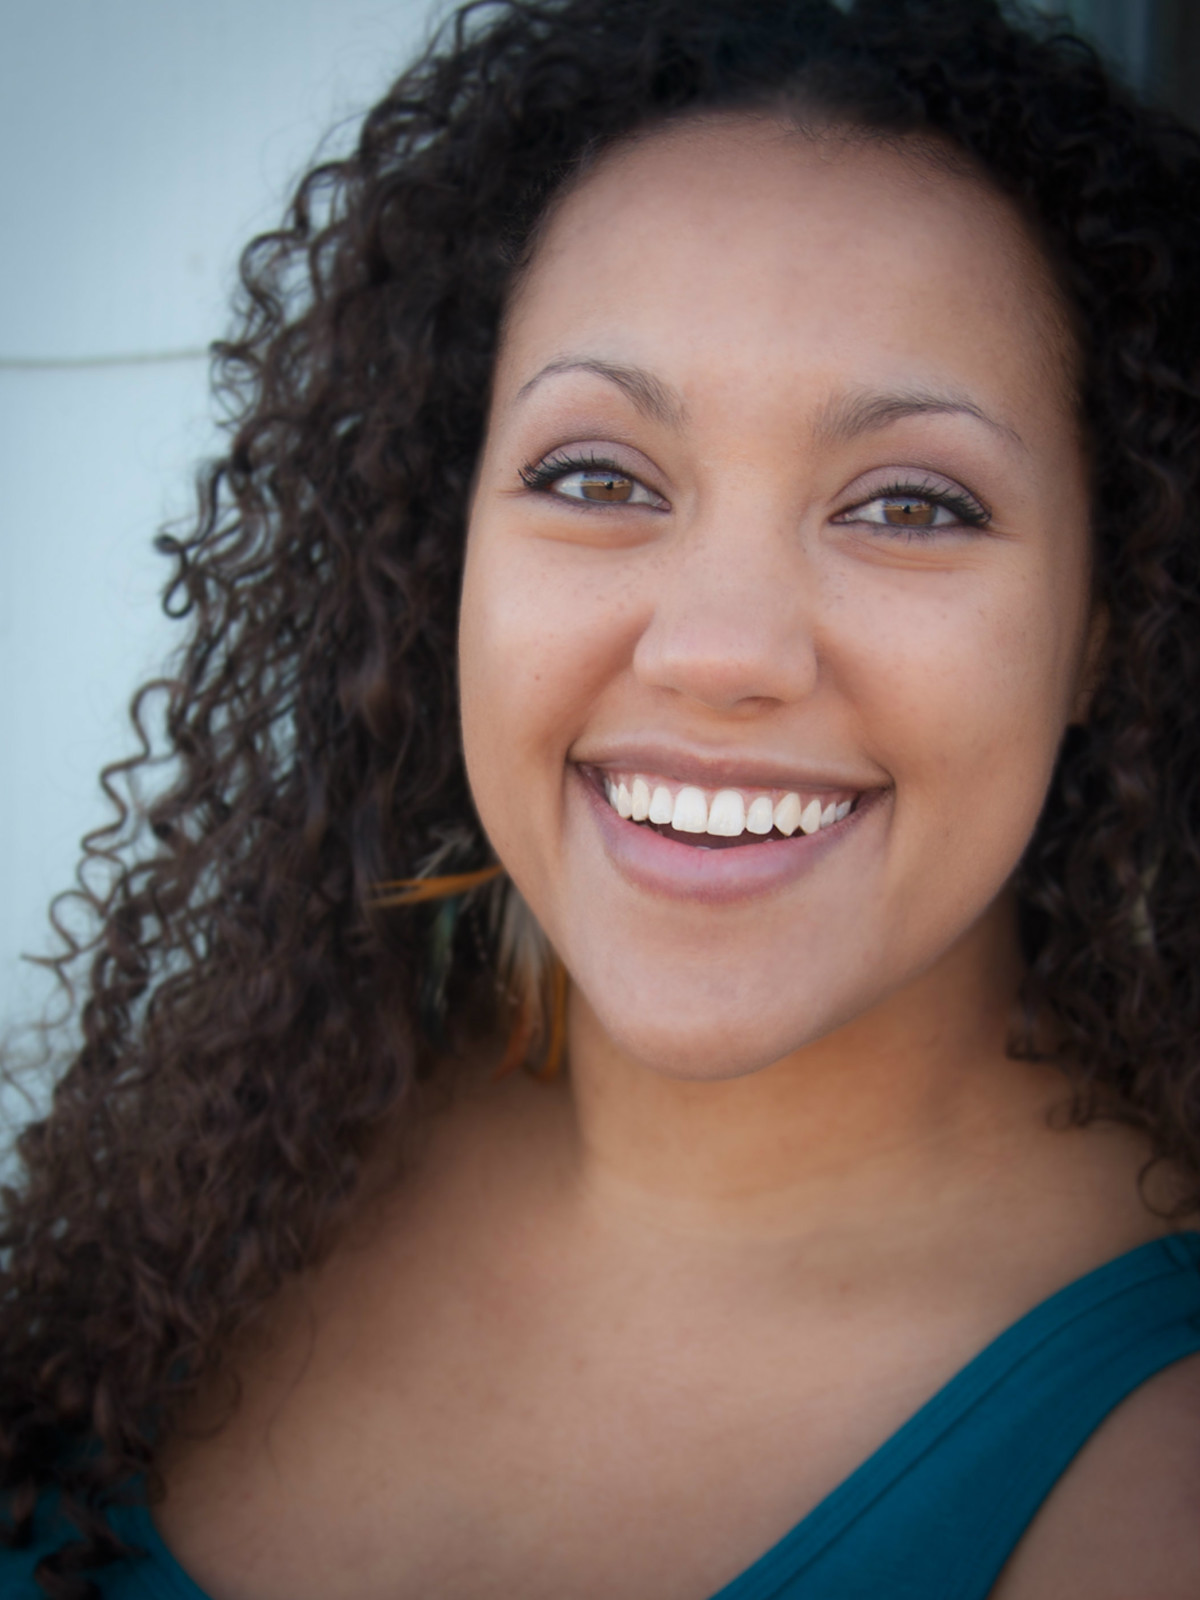 Dallas theatermaker Ariana Cook